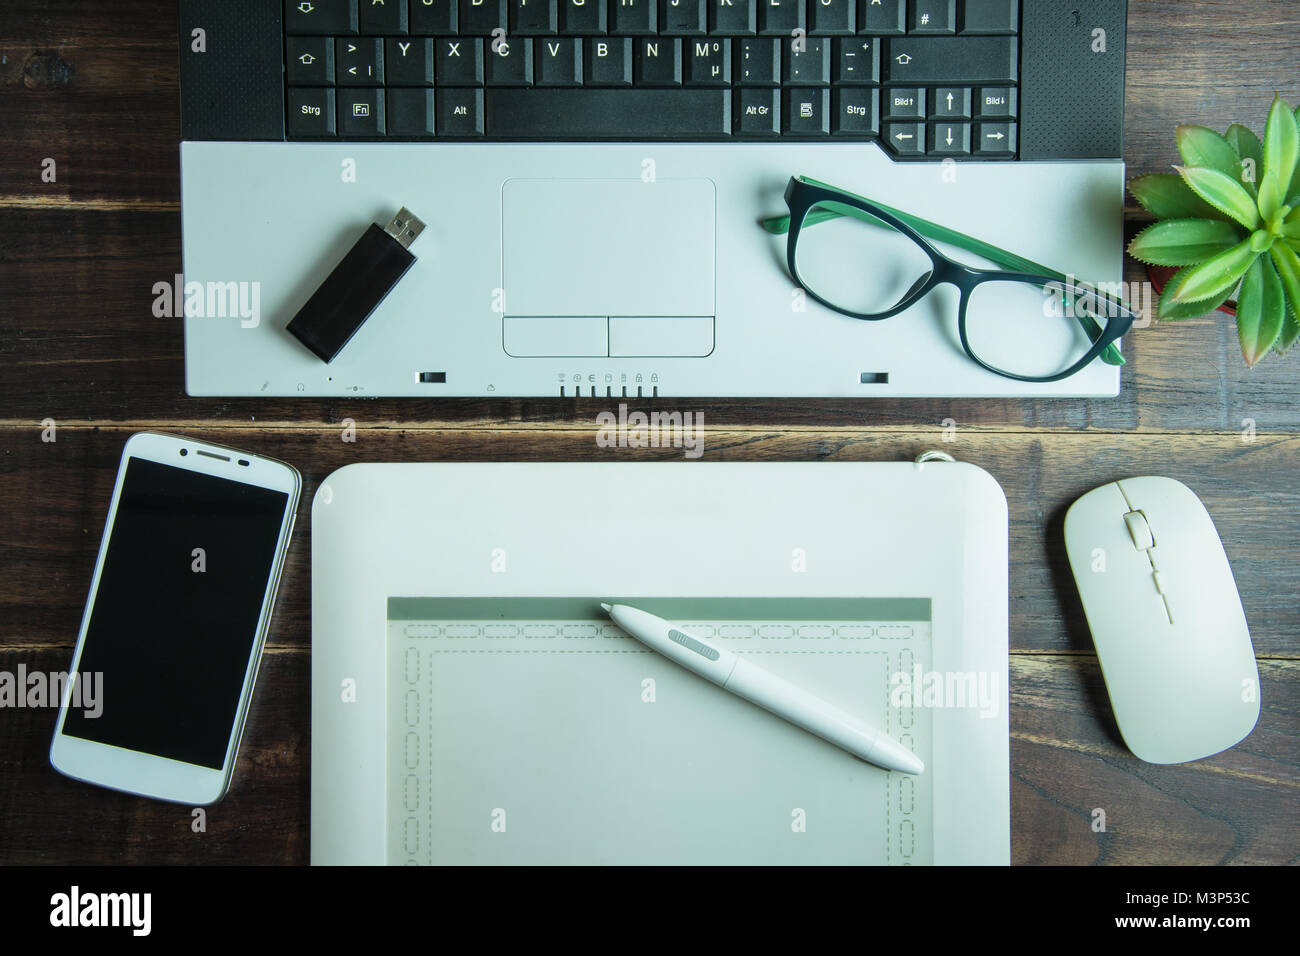 Top View Of Office Stuff Graphic Design With Pen Mouse Pad Laptop Wireless  Mouse And Smart Phone On Wooden Table.Concept Graphic Design Workplace